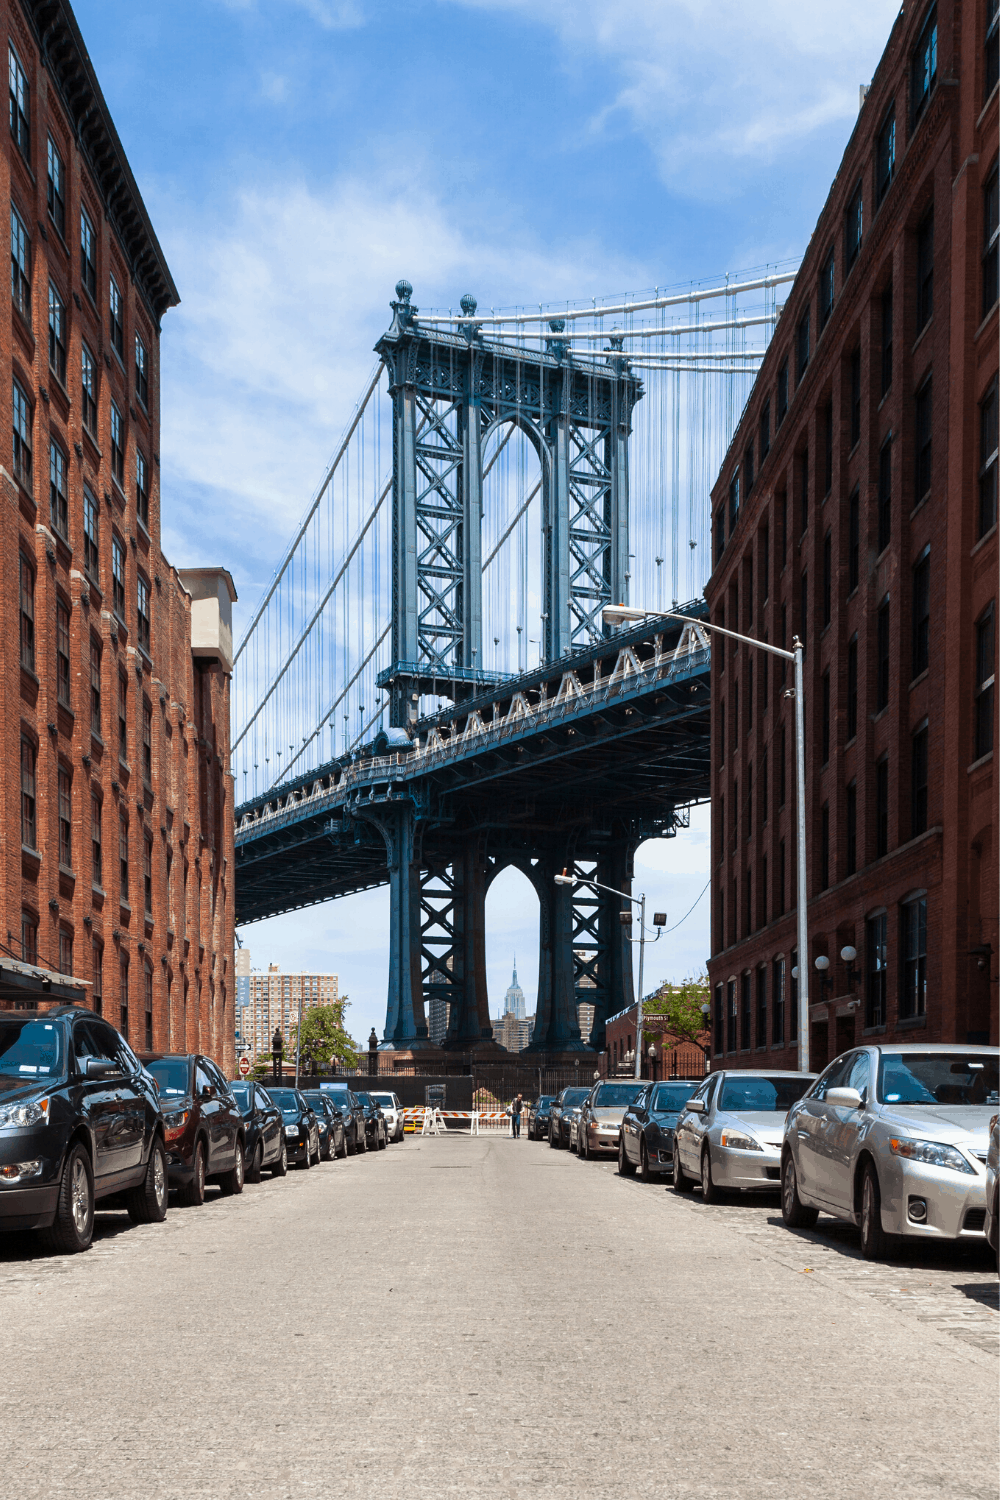 An iconic shot of the Manhattan Bridge in DUMBO from the corner of Washington Street and Water Street.